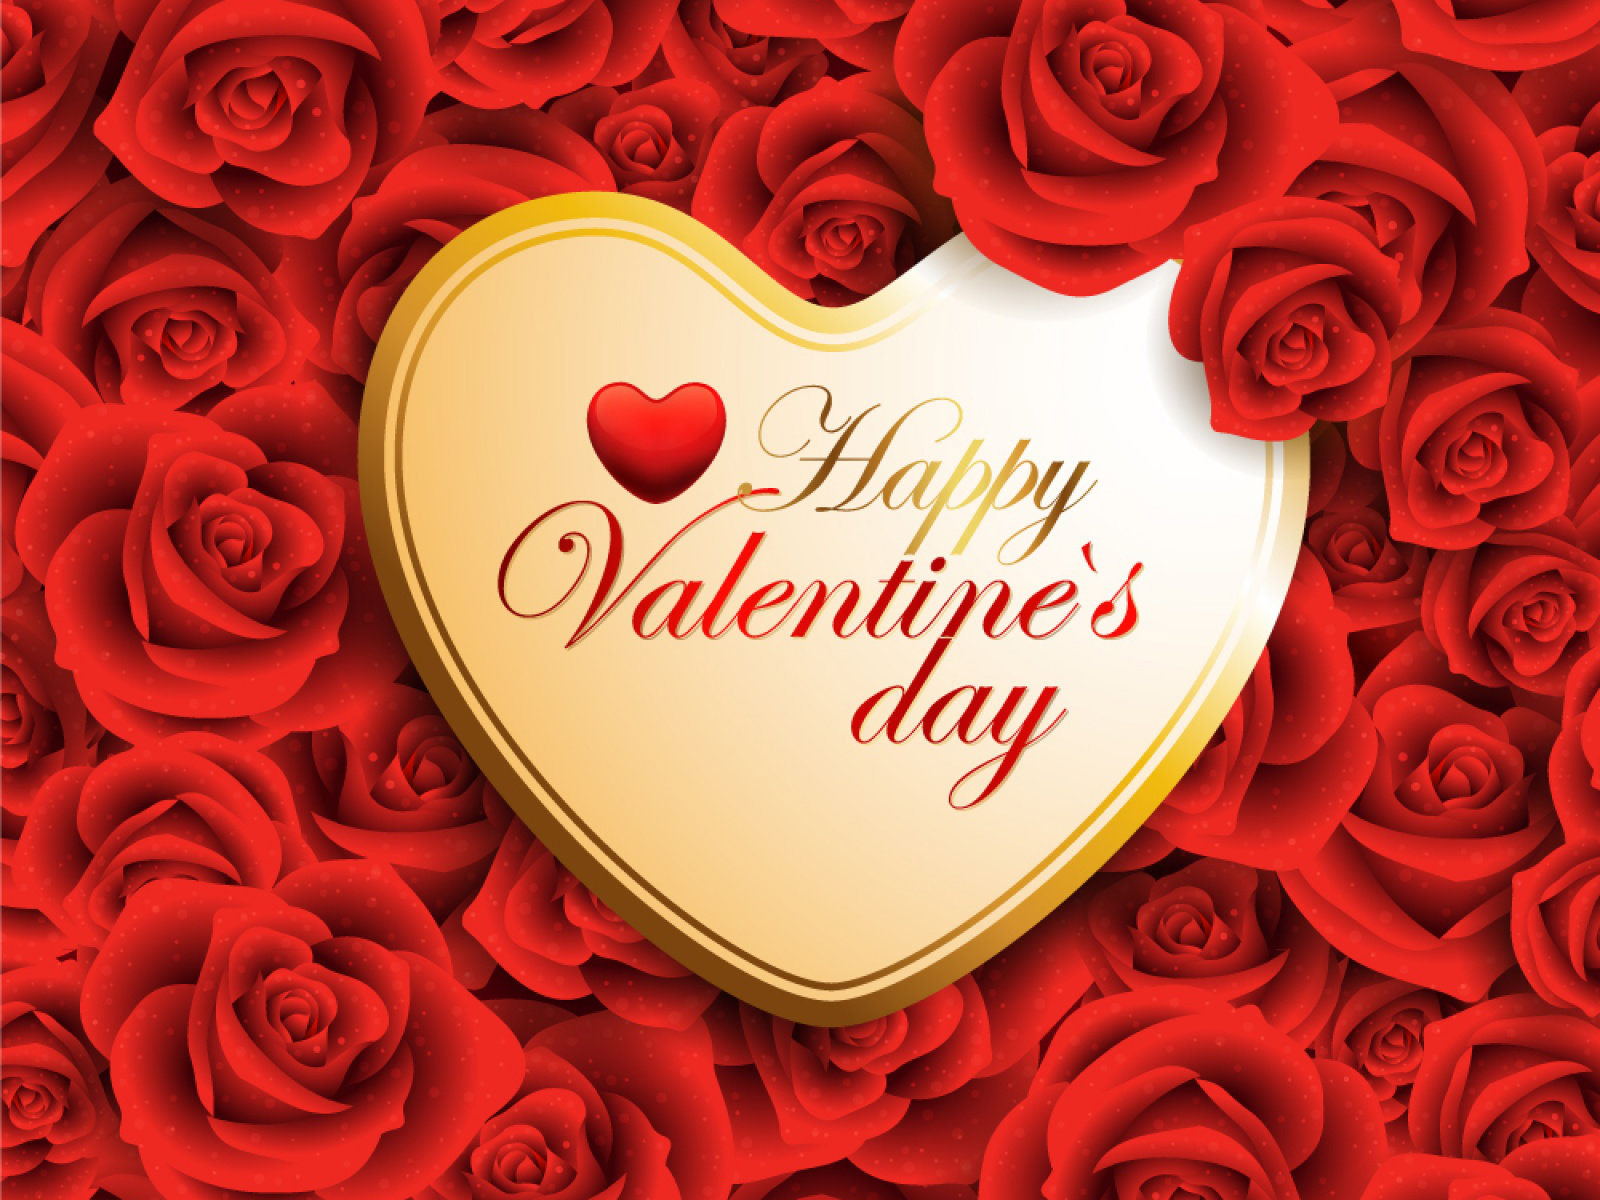 50 Happy Valentines Day 2020 Images HD Wallpapers For Facebook 1600x1200